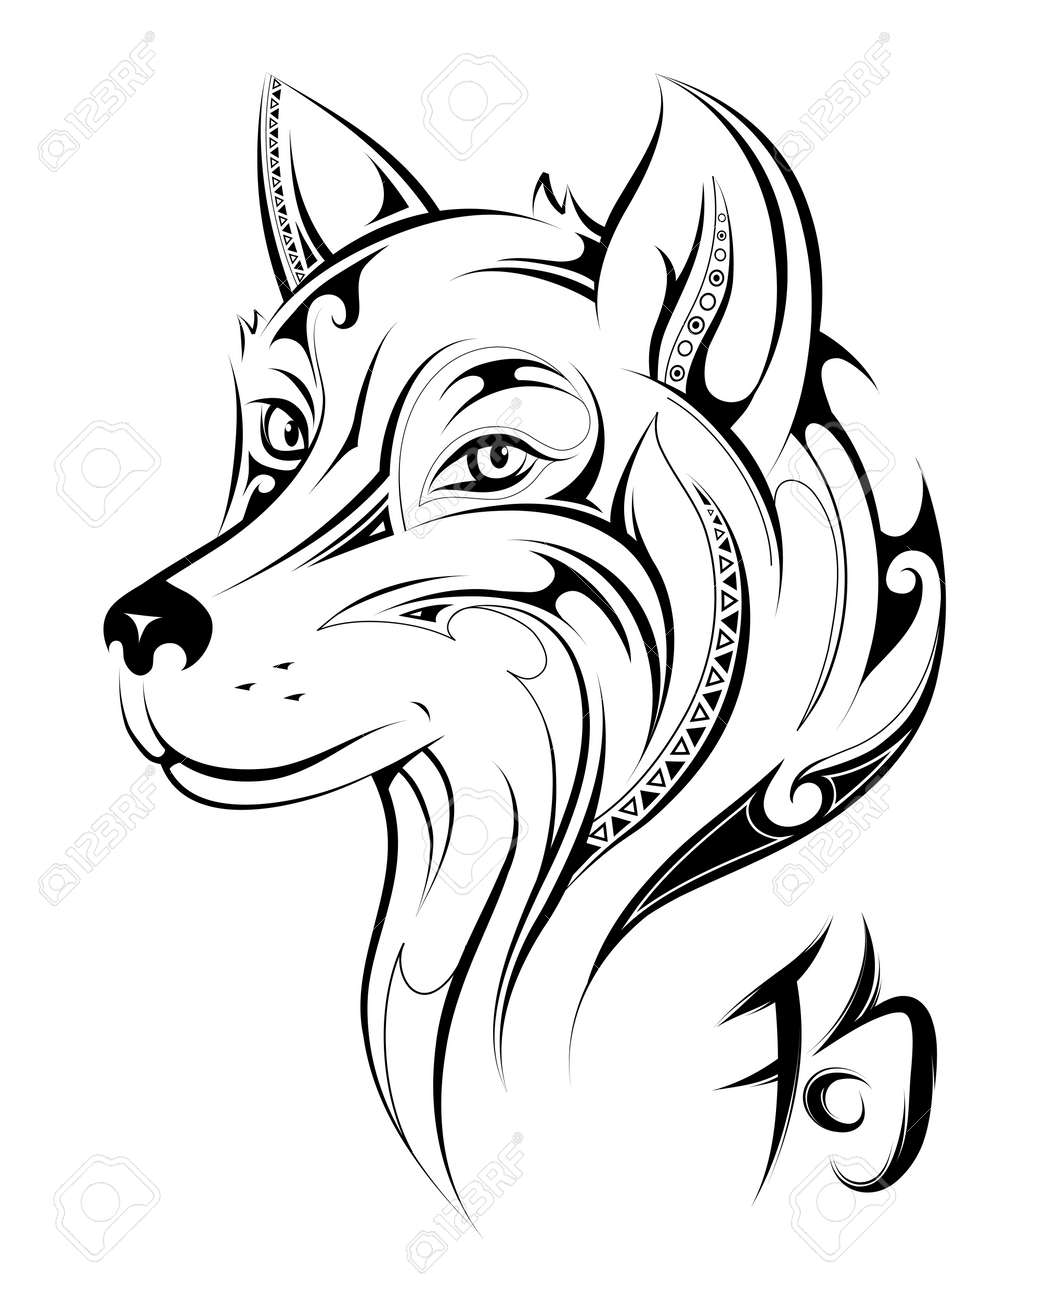 Chinese Zodiac Dog As Symbol For 2018 New Year Hieroglyph Dog